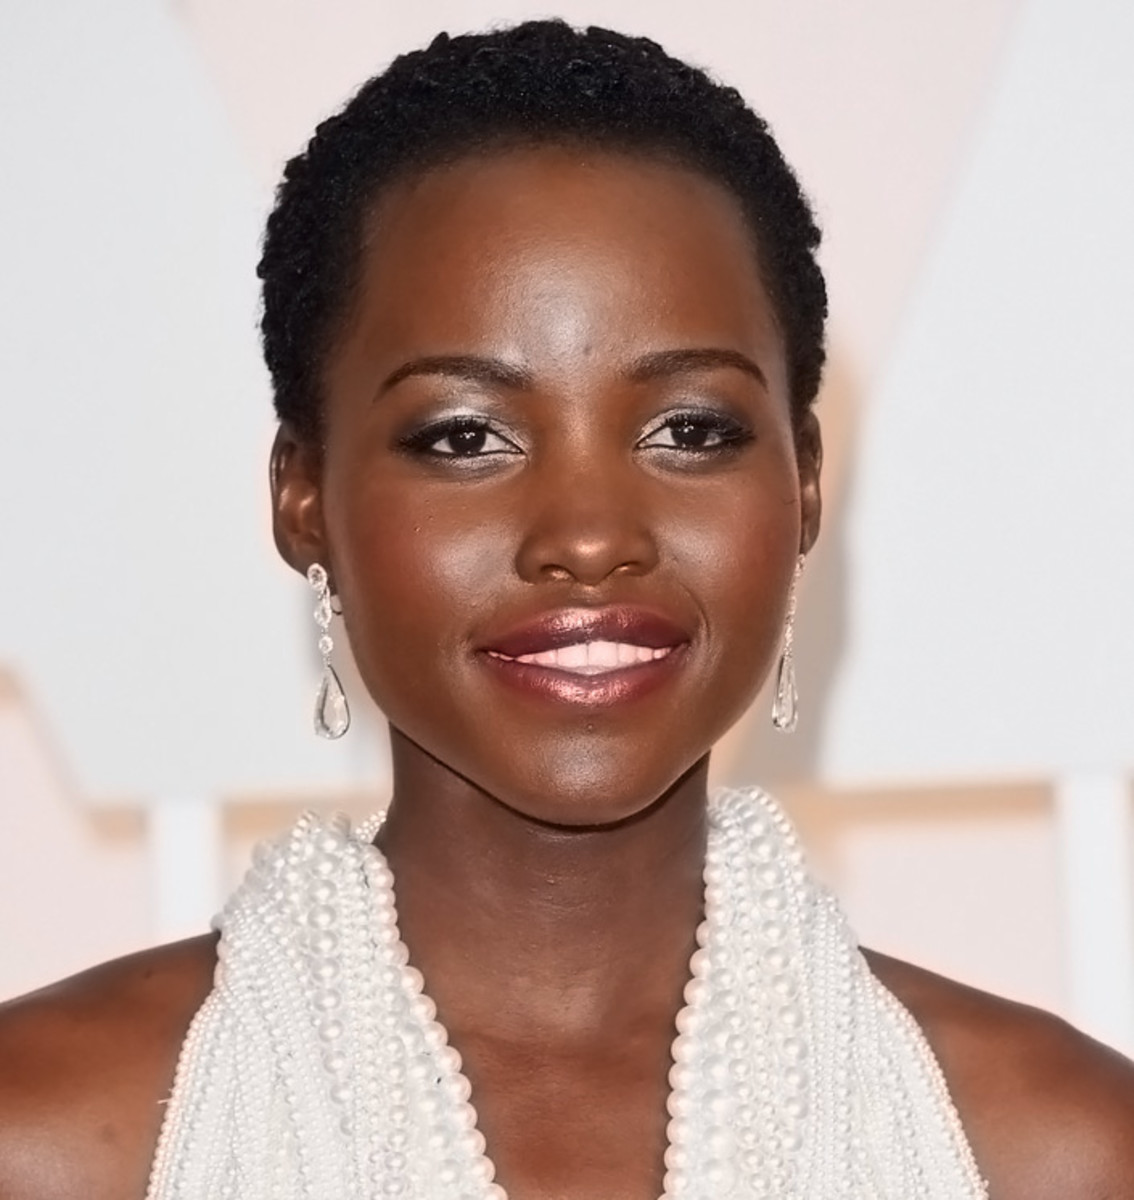 Lupita Nyong'o at the 2015 Oscars: makeup pro Nick Barose prepped her lips with Kiehls Lip Balm